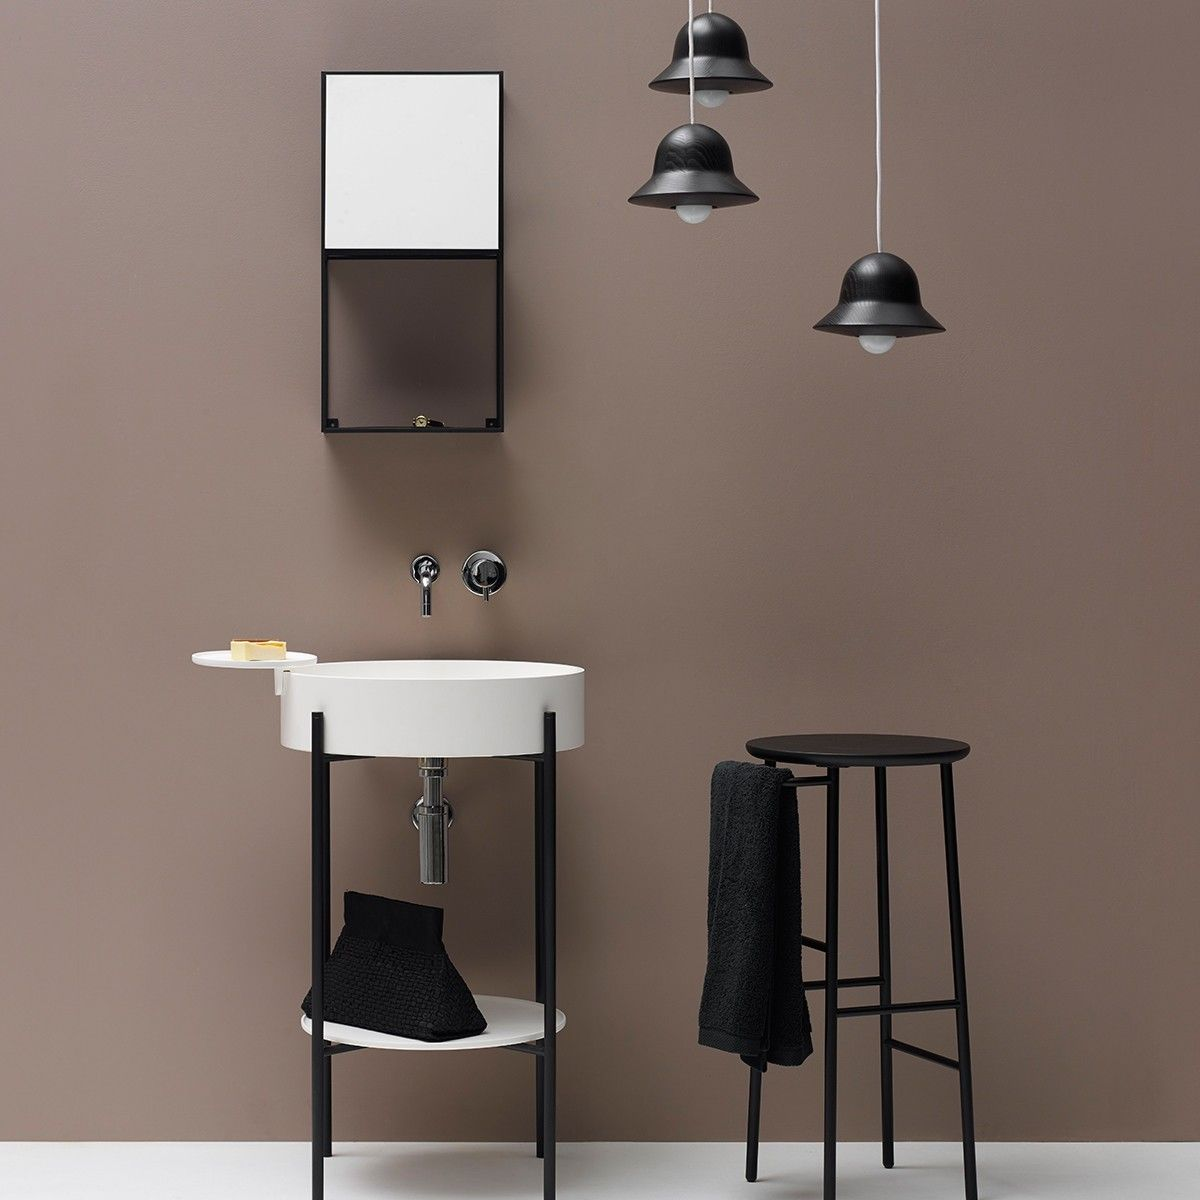 lavabo design petit stand ex t toilettes pinterest lavabo design lavabo et sdb. Black Bedroom Furniture Sets. Home Design Ideas